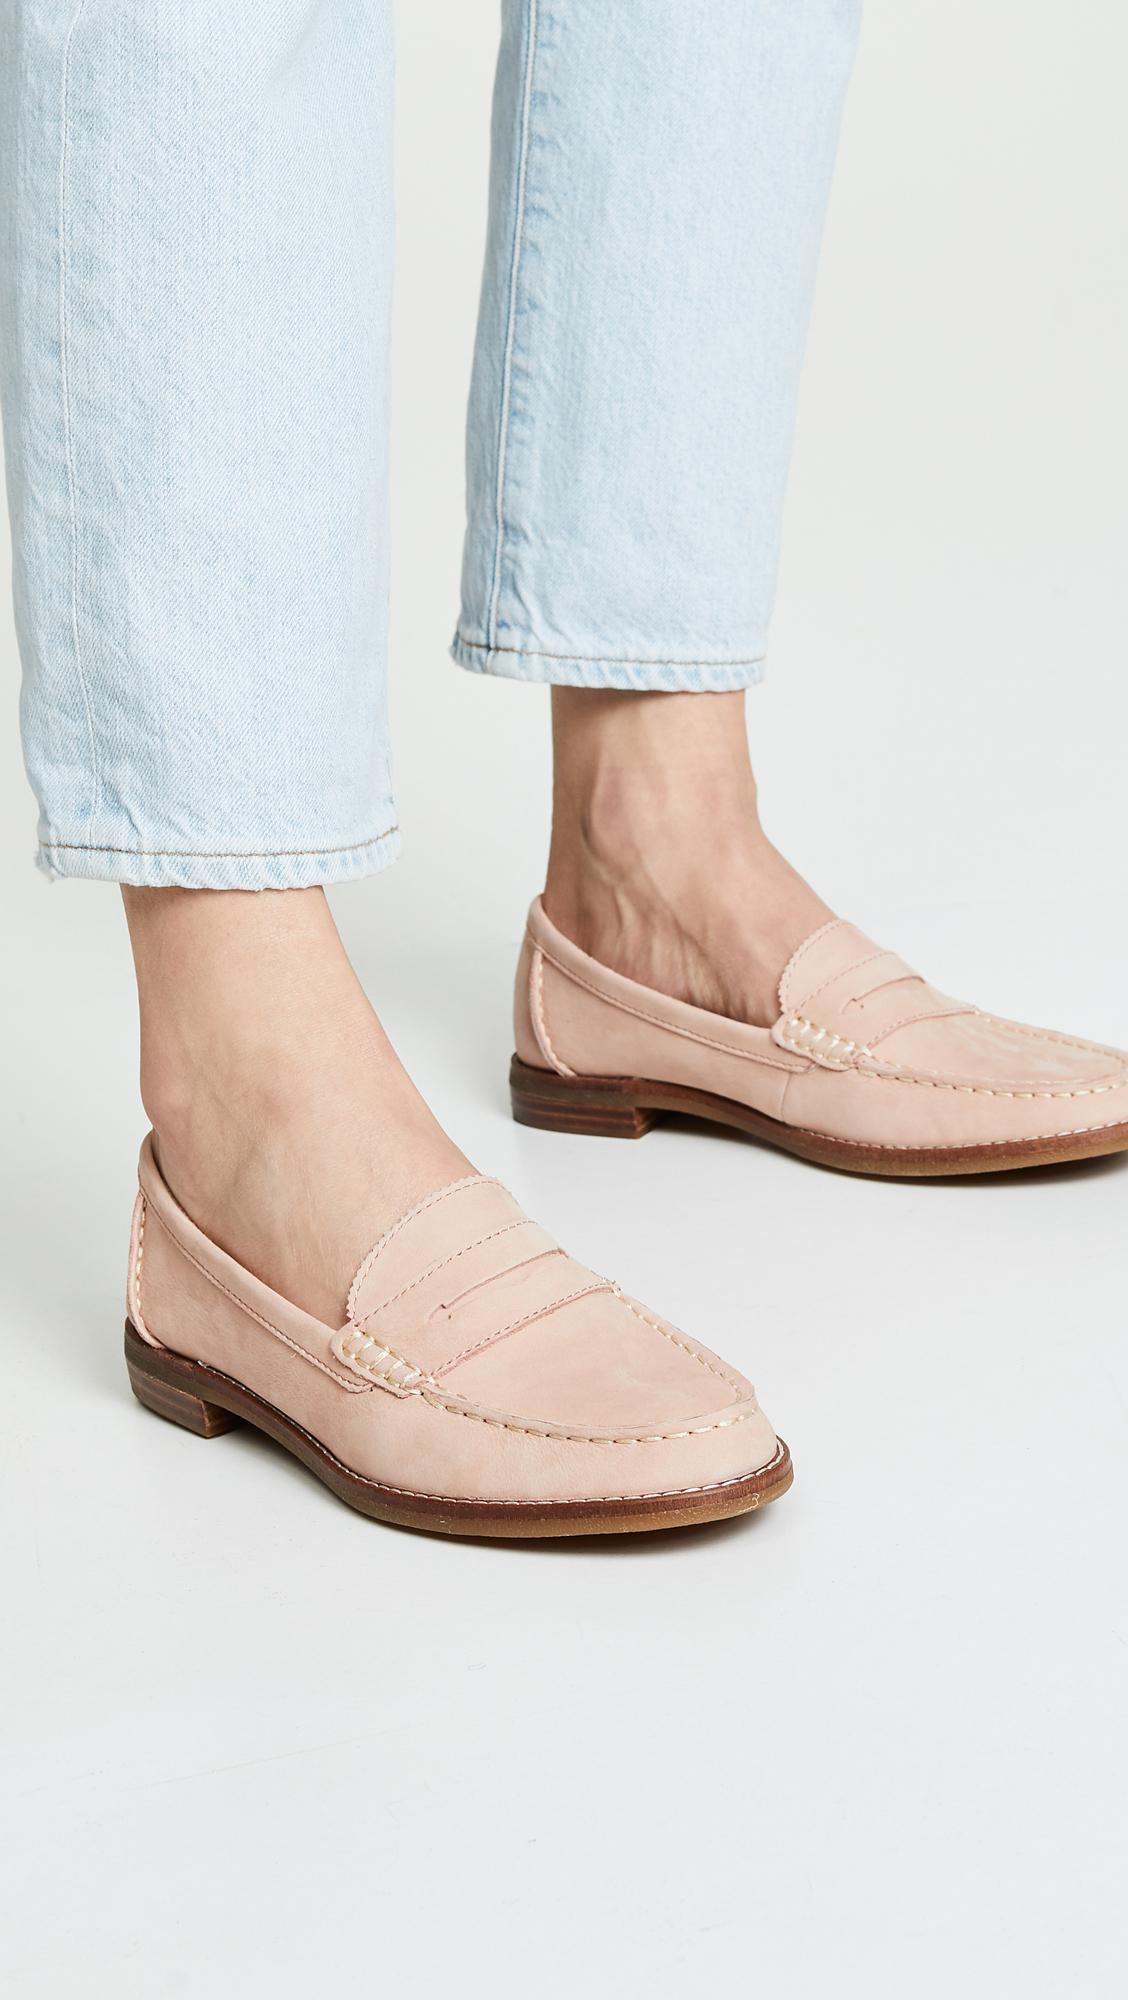 01405c94295c Sperry Top-Sider - Pink Seaport Penny Loafers - Lyst. View fullscreen